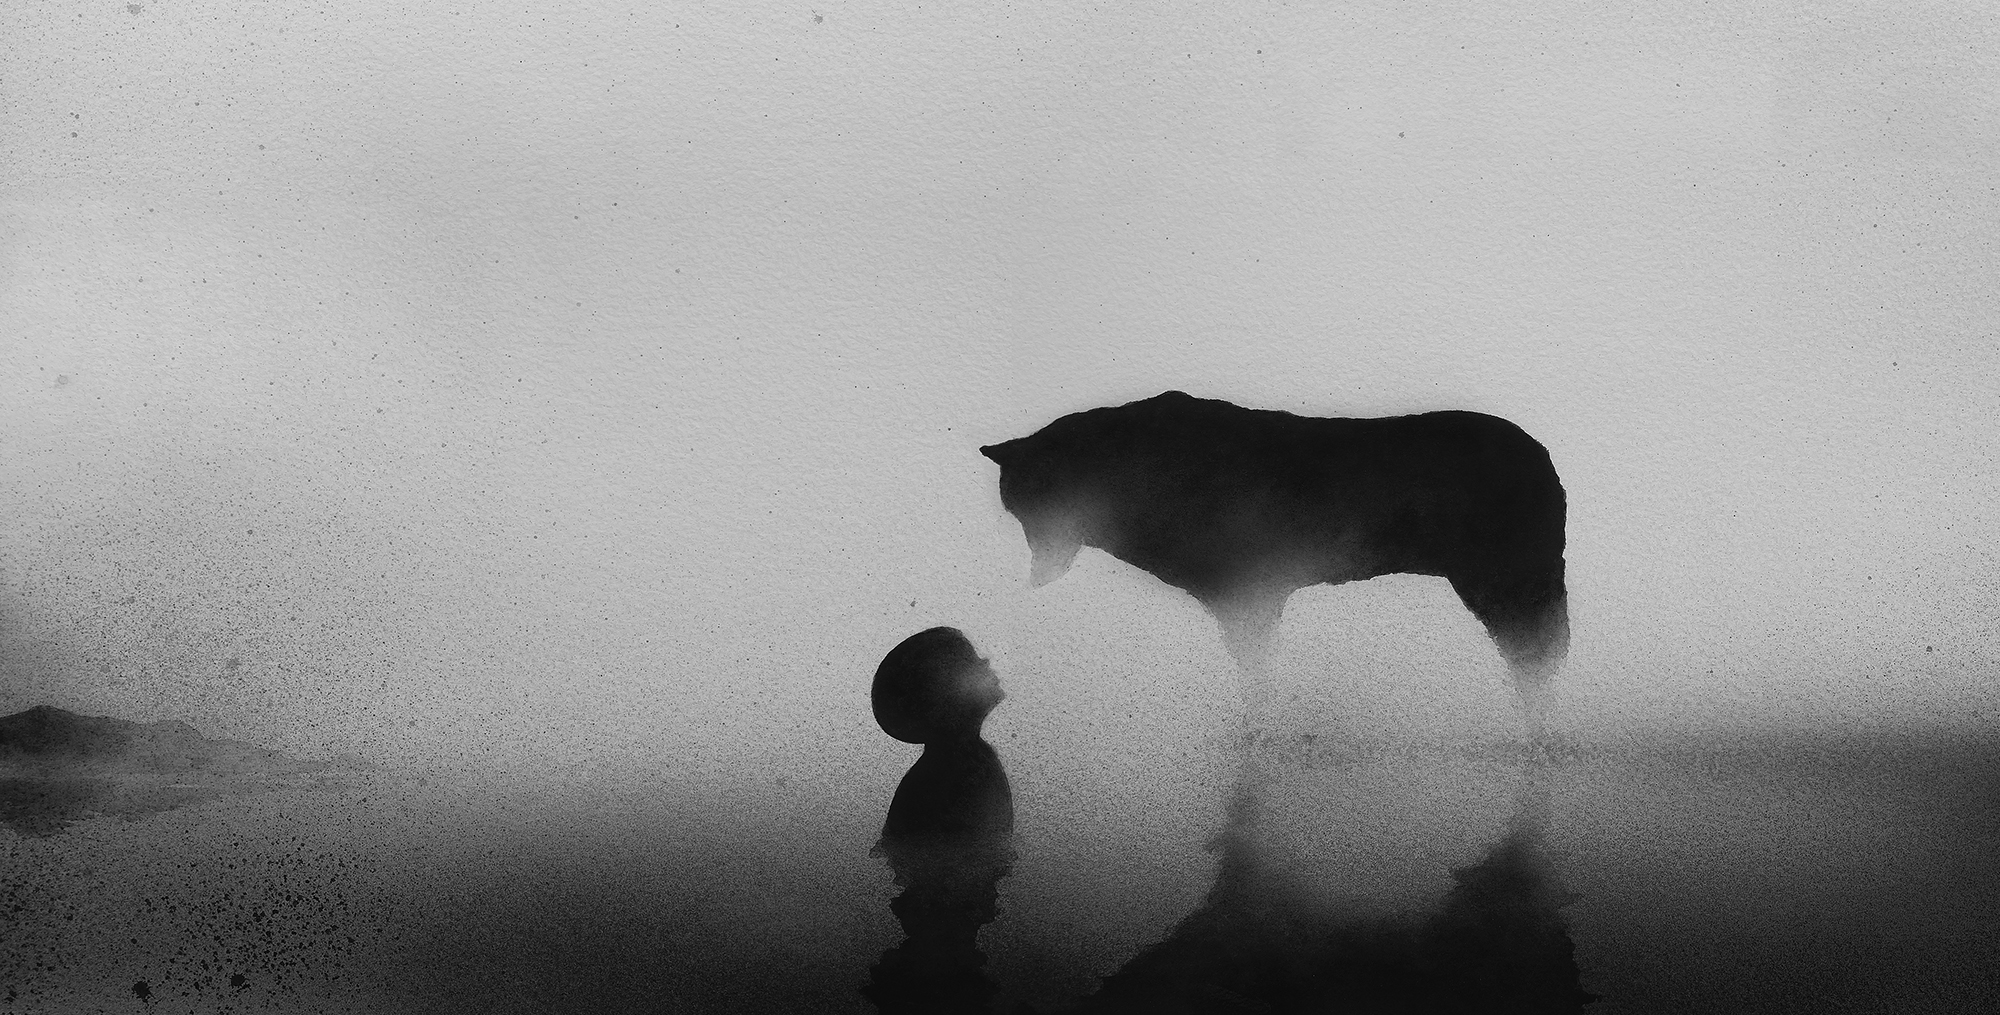 Illustration by Elicia Edijanto of a wolf looking down on a child in silhouette.